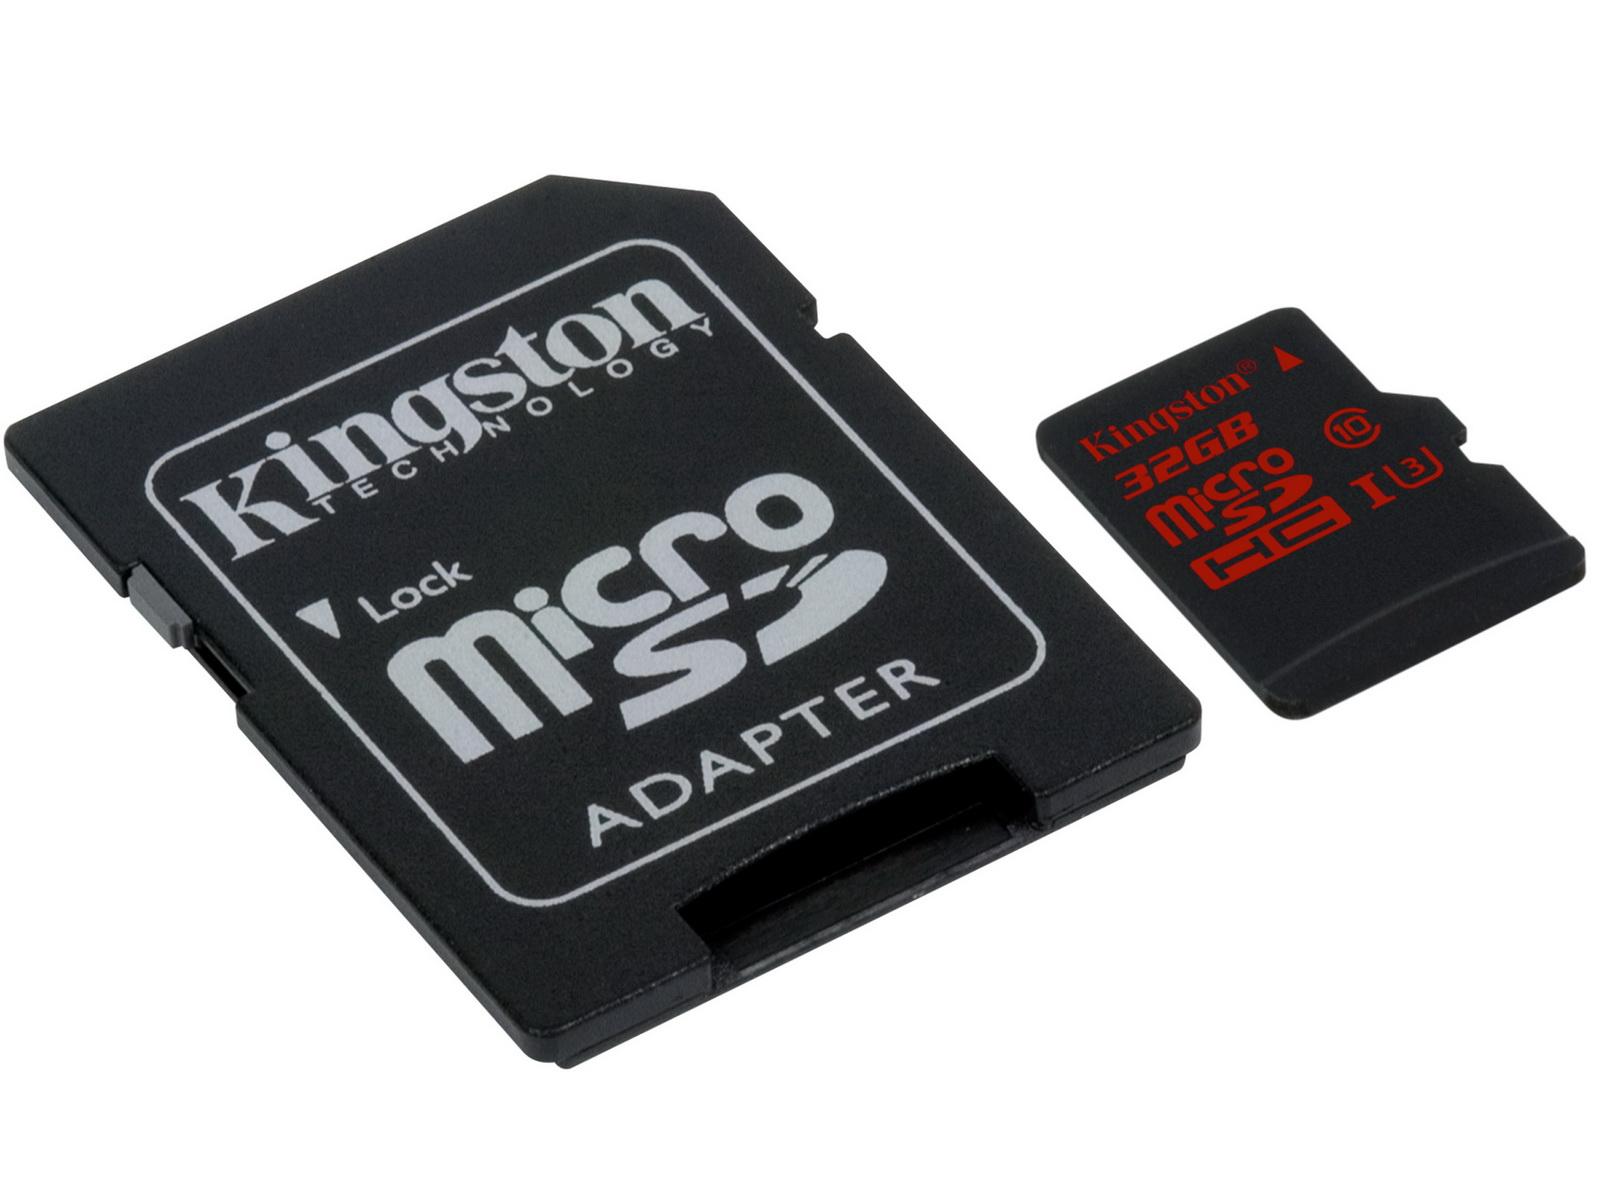 Kingston Digital SDCA3 microSD card